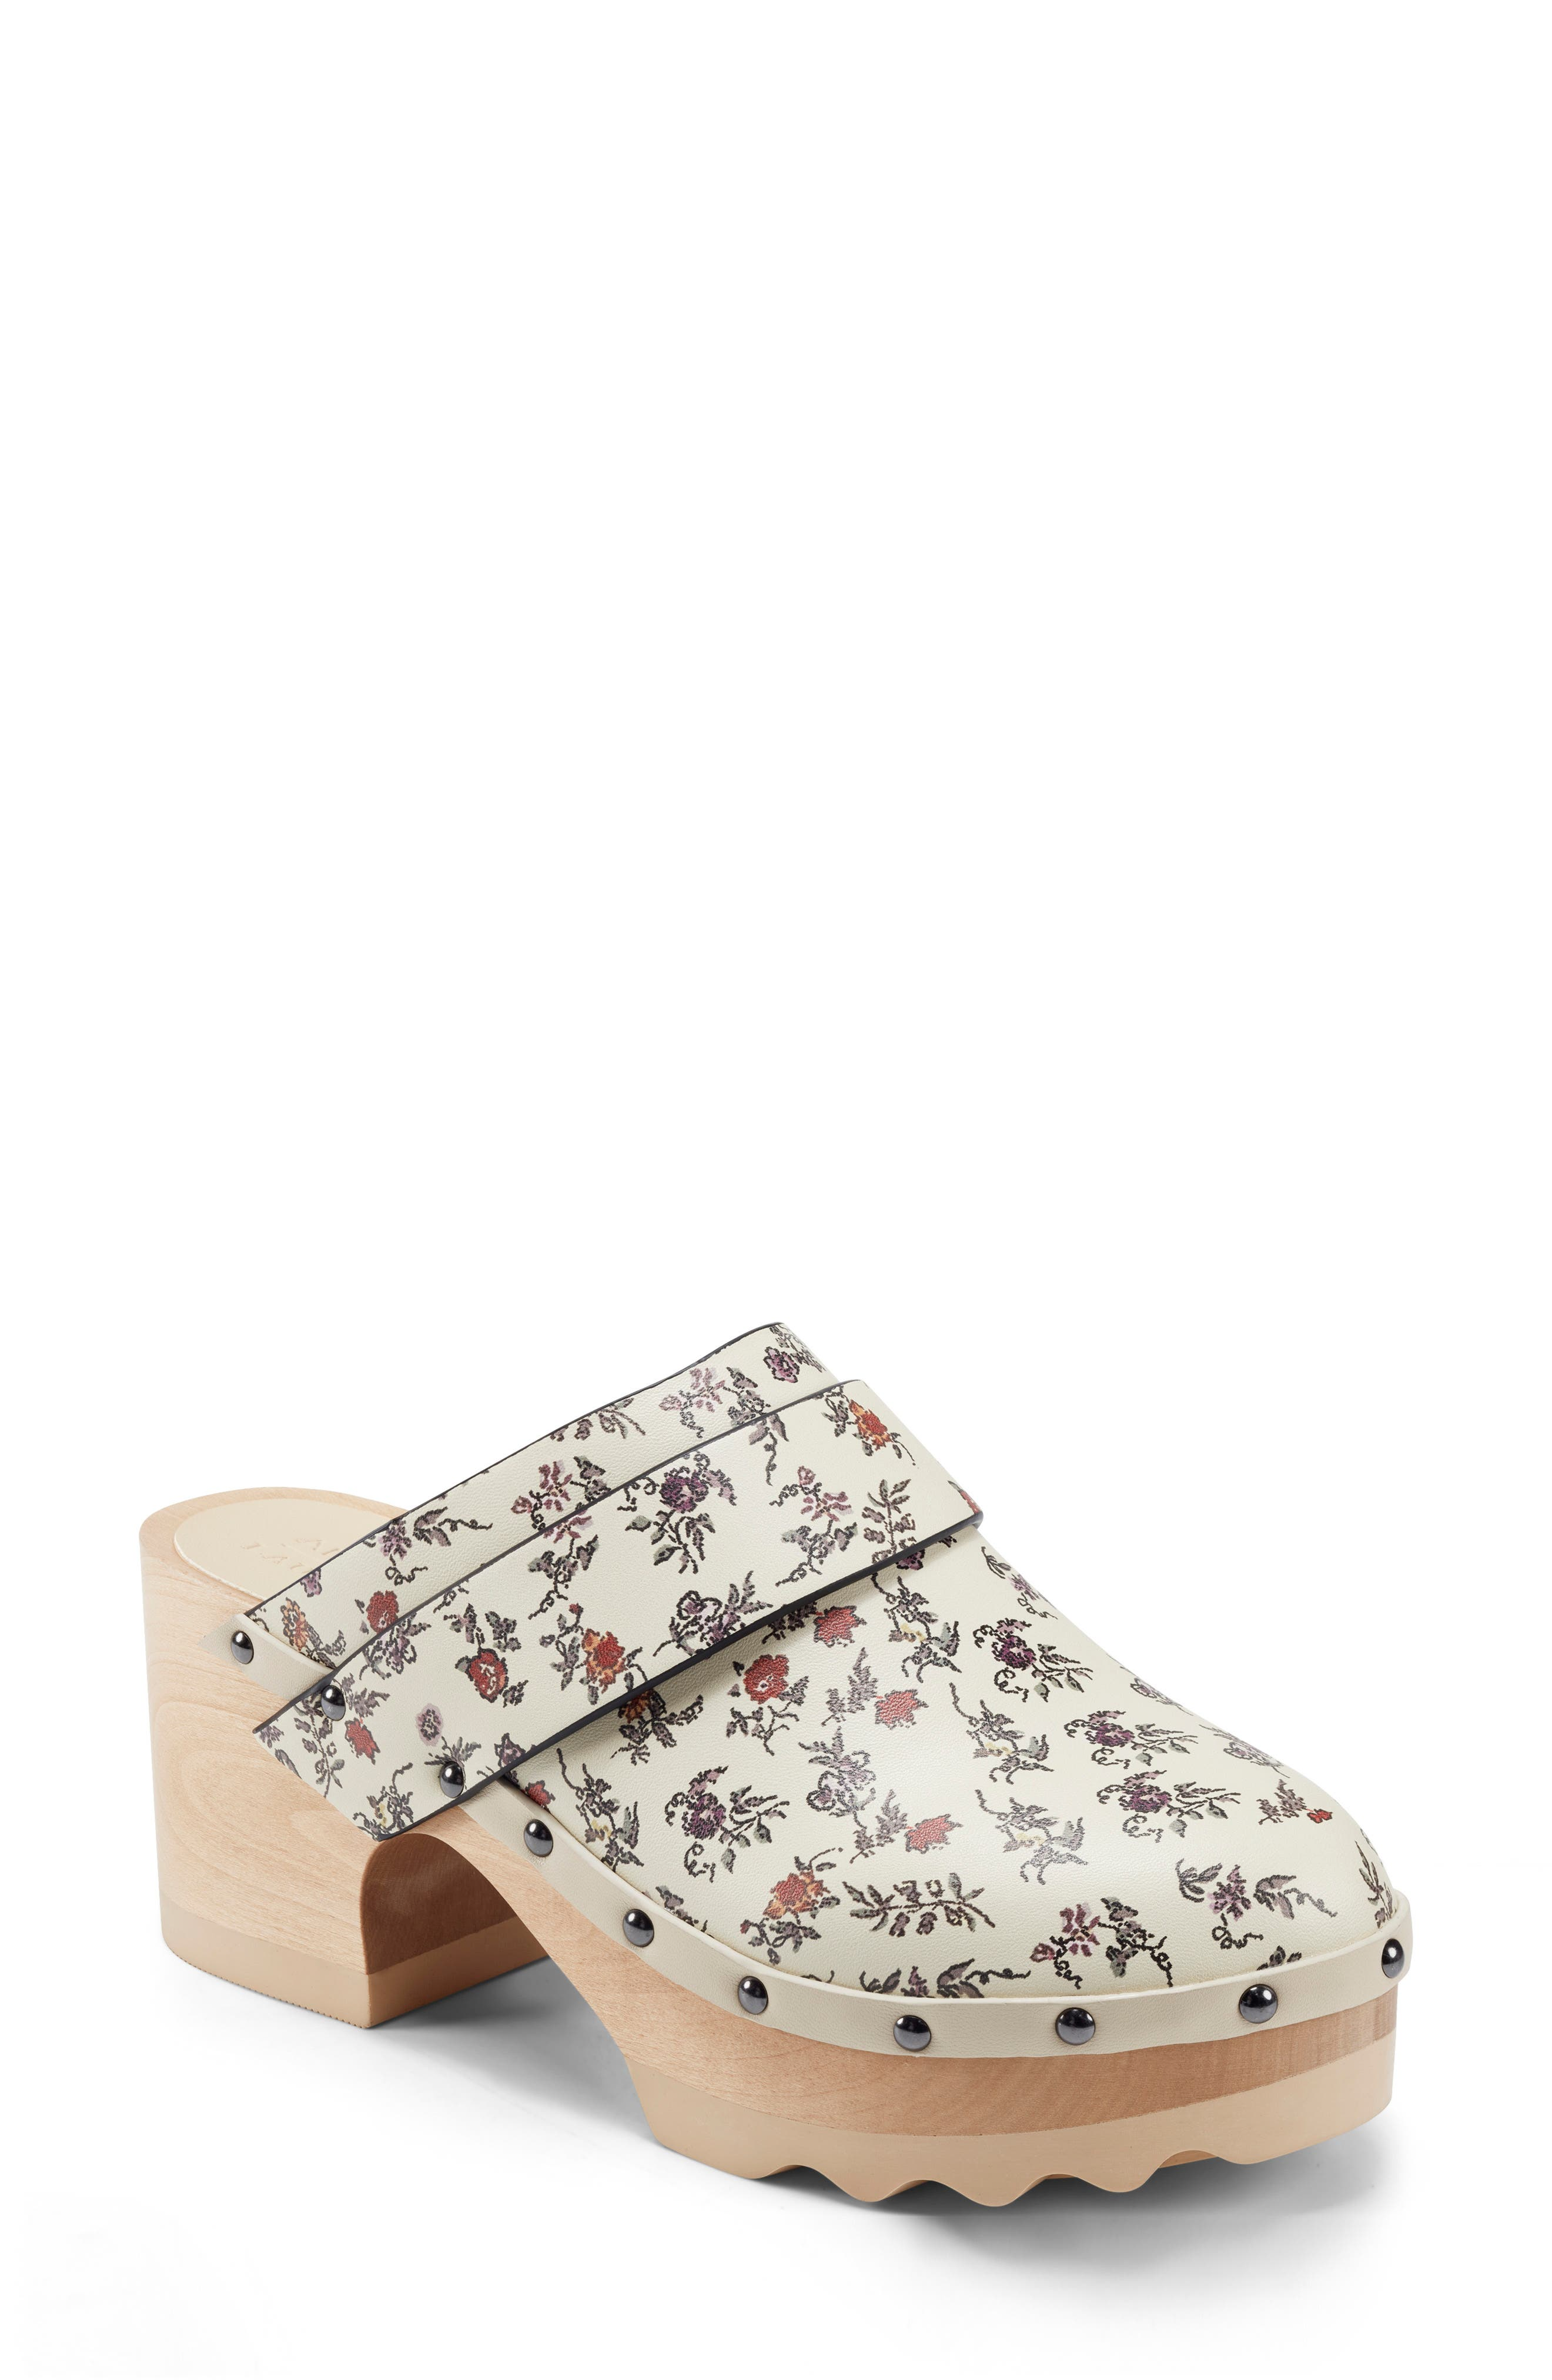 X Laura Ashley Pedro Quilted Faux Leather Clog